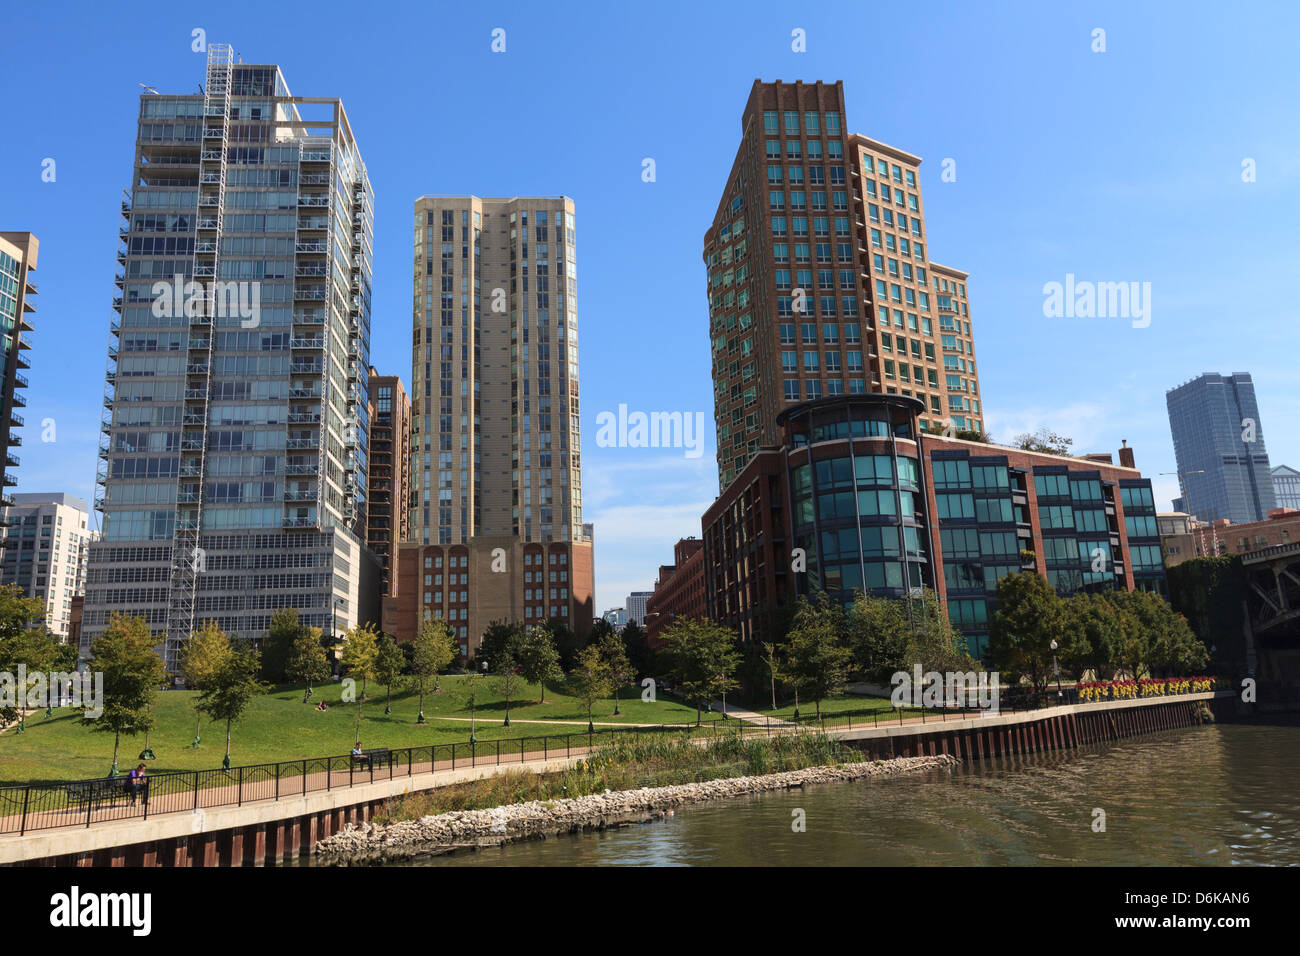 Expensive apartment buildings on the Chicago River, Chicago, Illinois, United States of America, North America - Stock Image